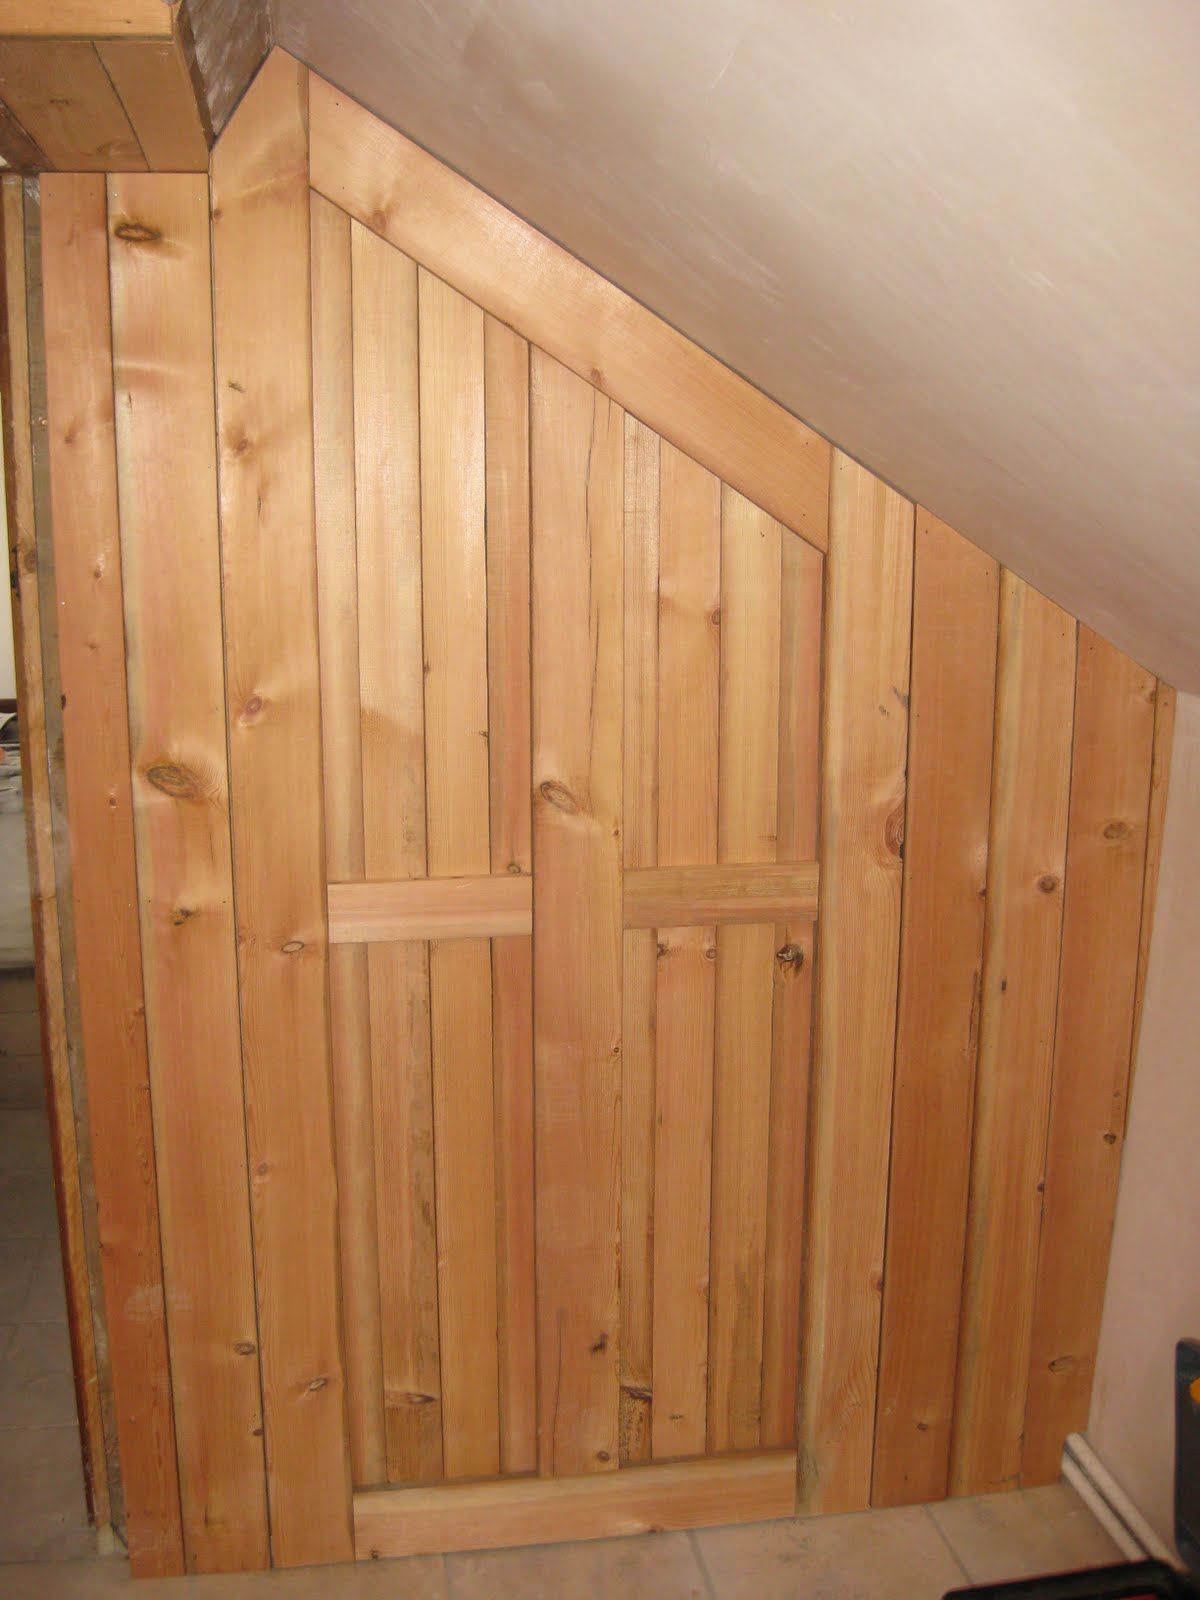 Amazing photo of Download image Recycled Timber Cladding 3 Jpg PC Android iPhone and  with #7F4B28 color and 1200x1600 pixels